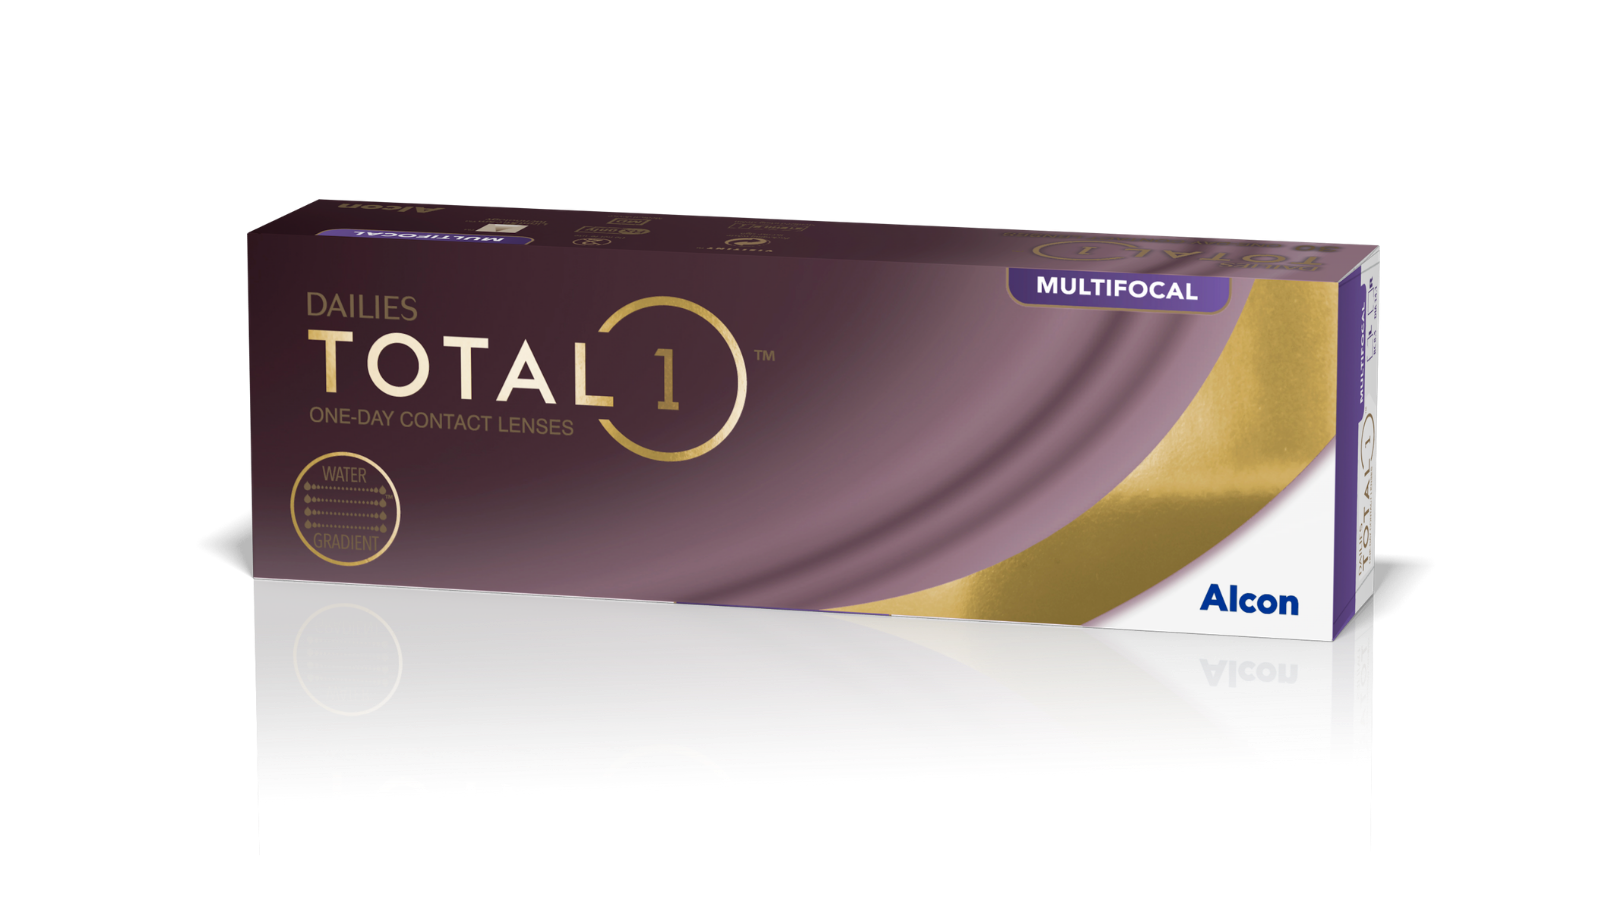 DAILIES TOTAL1 ® Multifocal